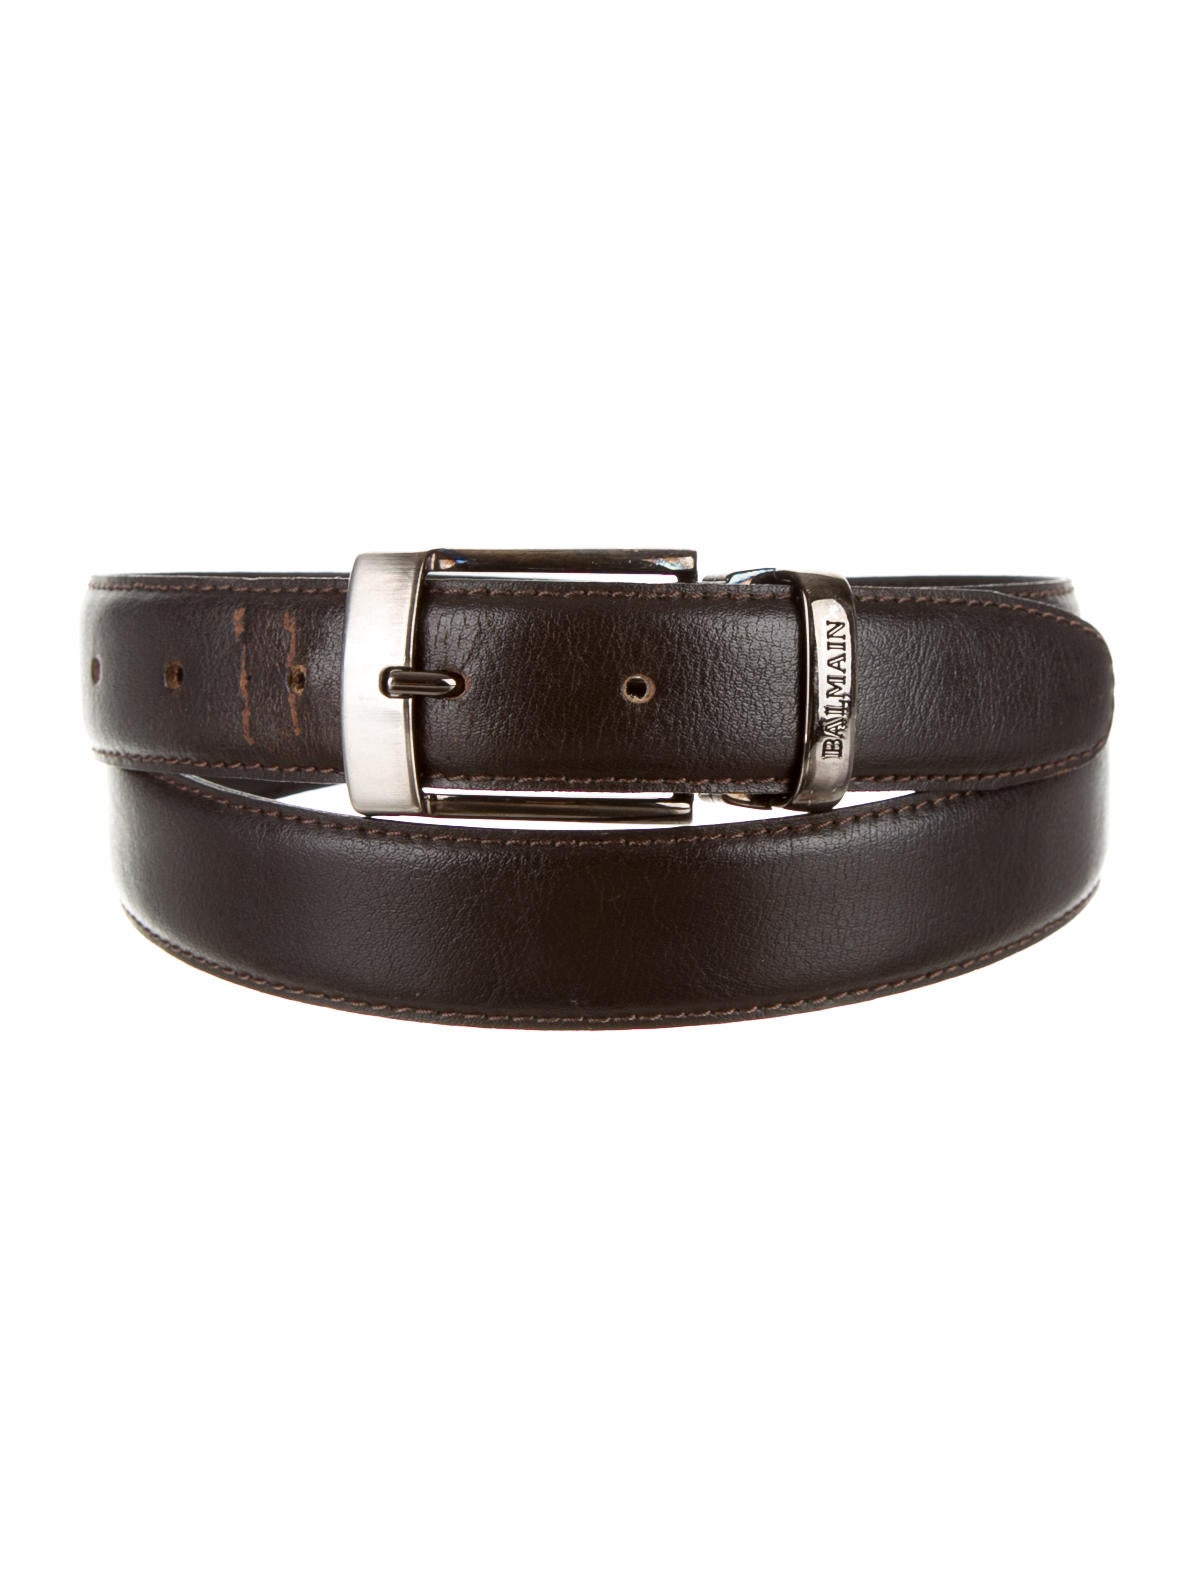 PIERRE BALMAIN Belts. leather, solid color, wide, metal applications, snap button closure, contains non-textile parts of animal origin. Soft Leather GI 4, GI. Men's. We use our own and third-party cookies to offer you the best possible service.